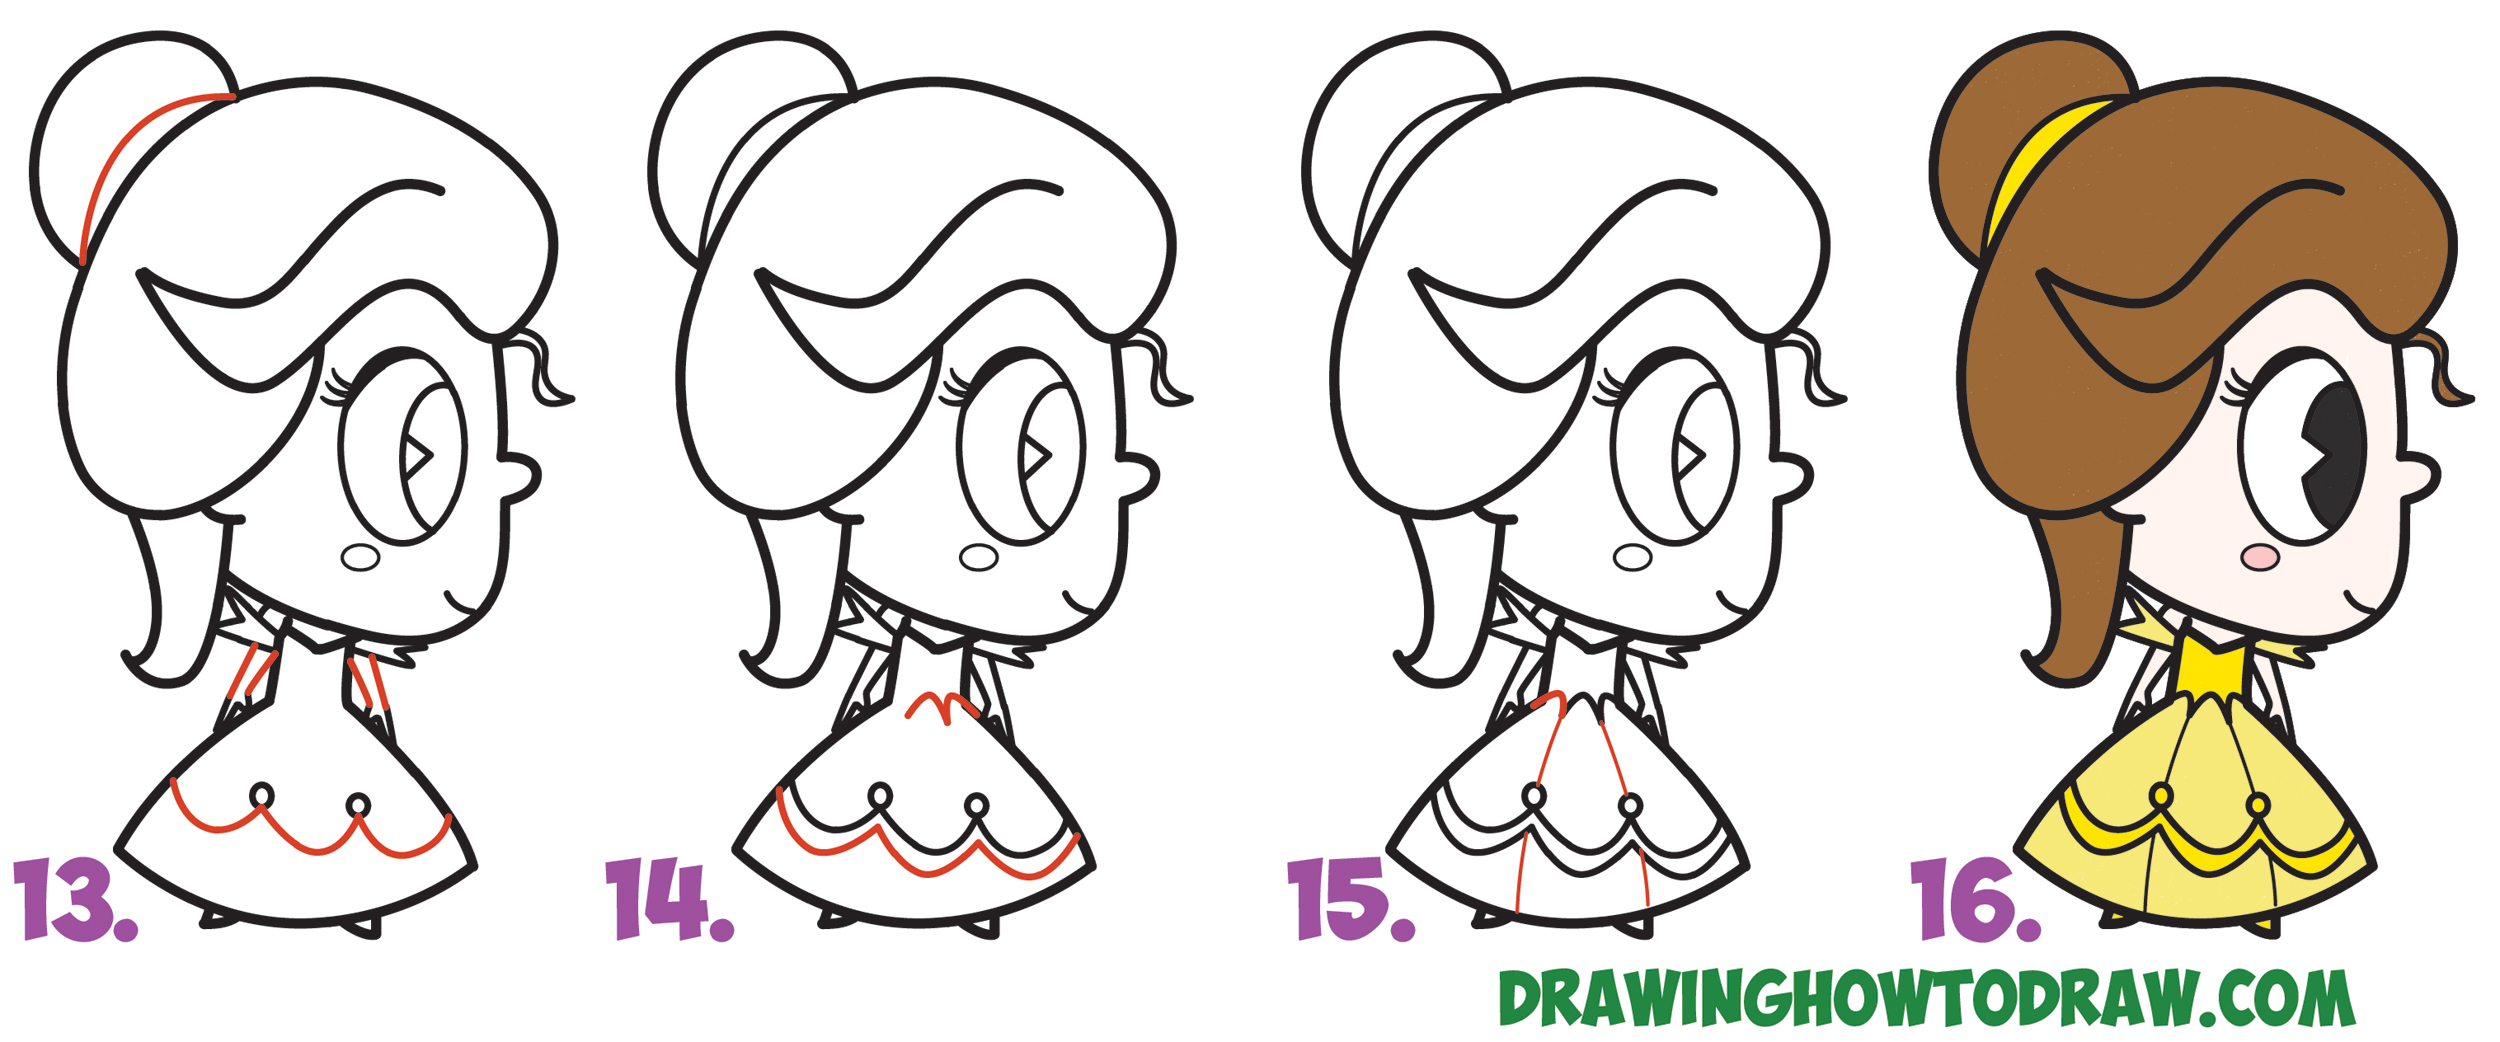 How To Draw Cute Kawaii Chibi Belle From Beauty And The